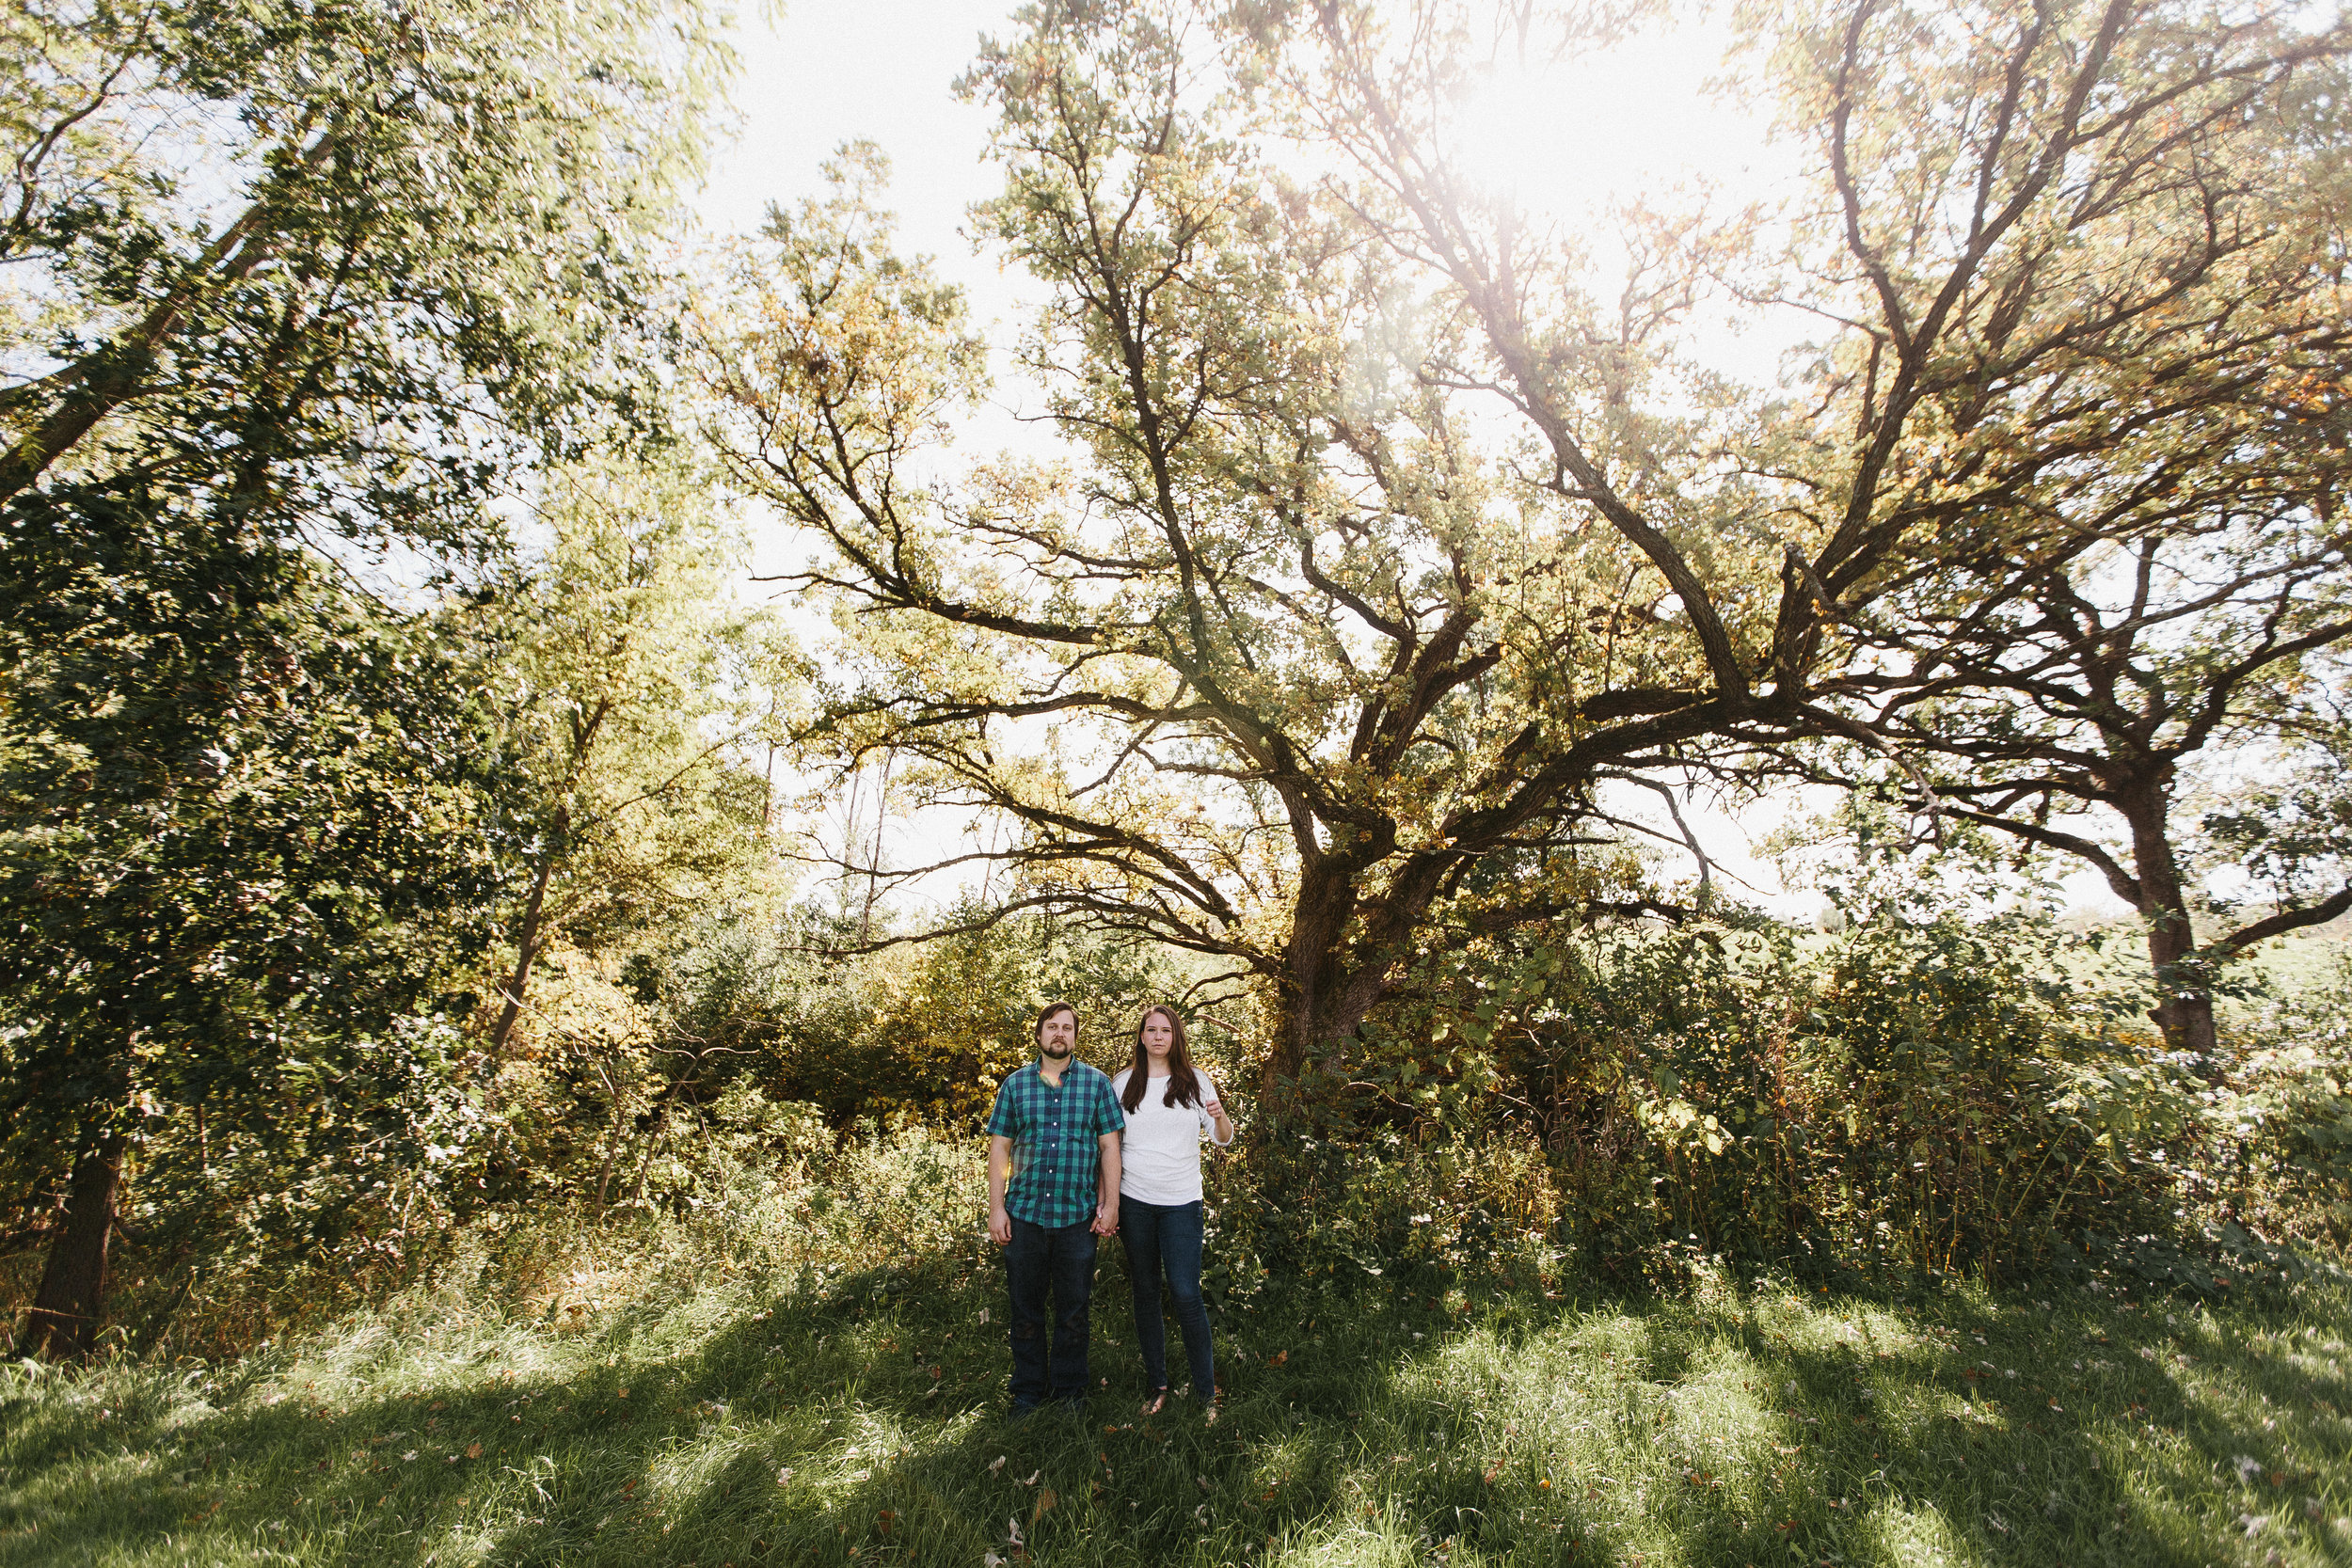 iowa_city_engagement_adventure_prairie_graduate_at_home_dog_couples_downtown_wilsons_orchard_1042.jpg